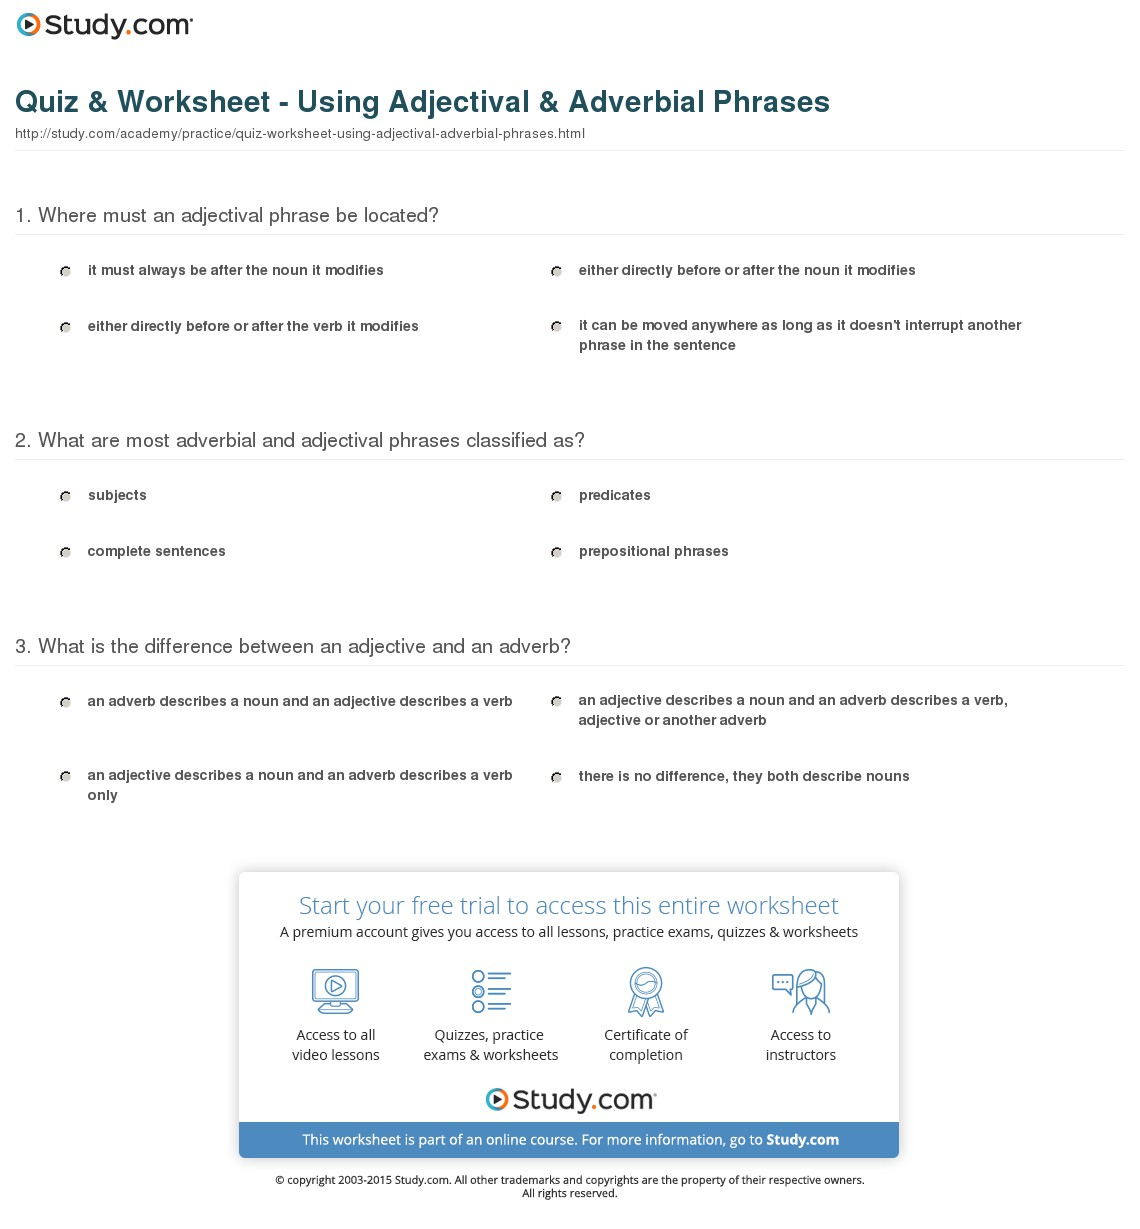 Adjective And Adverb Phrases Worksheets With Answers Free